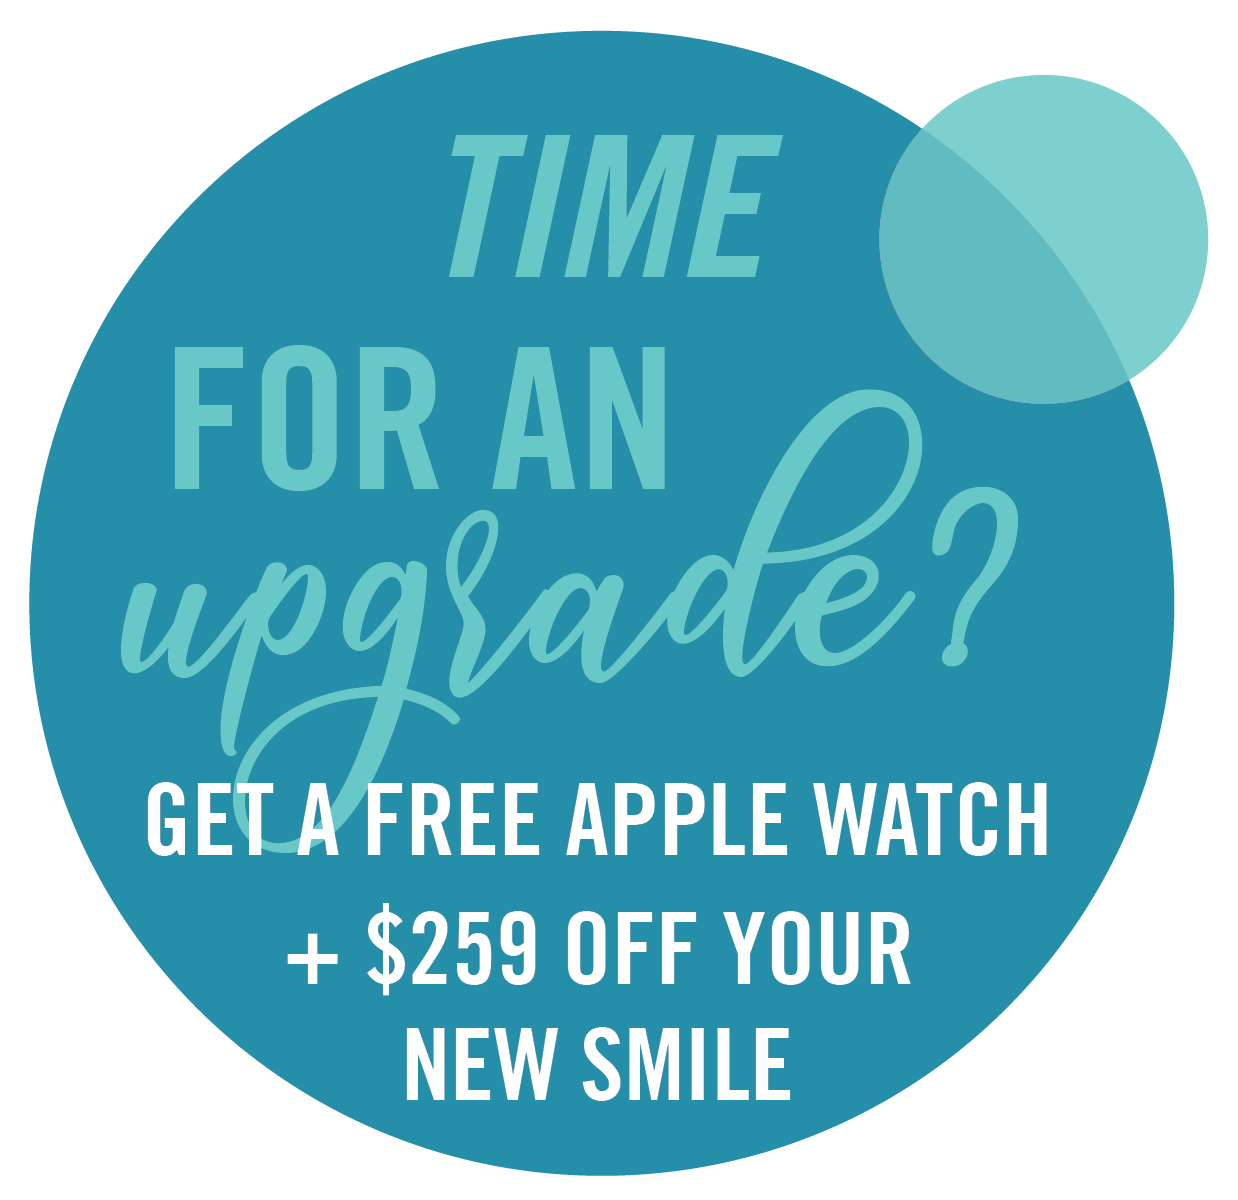 Advertisement for a free apple watch in Asheville